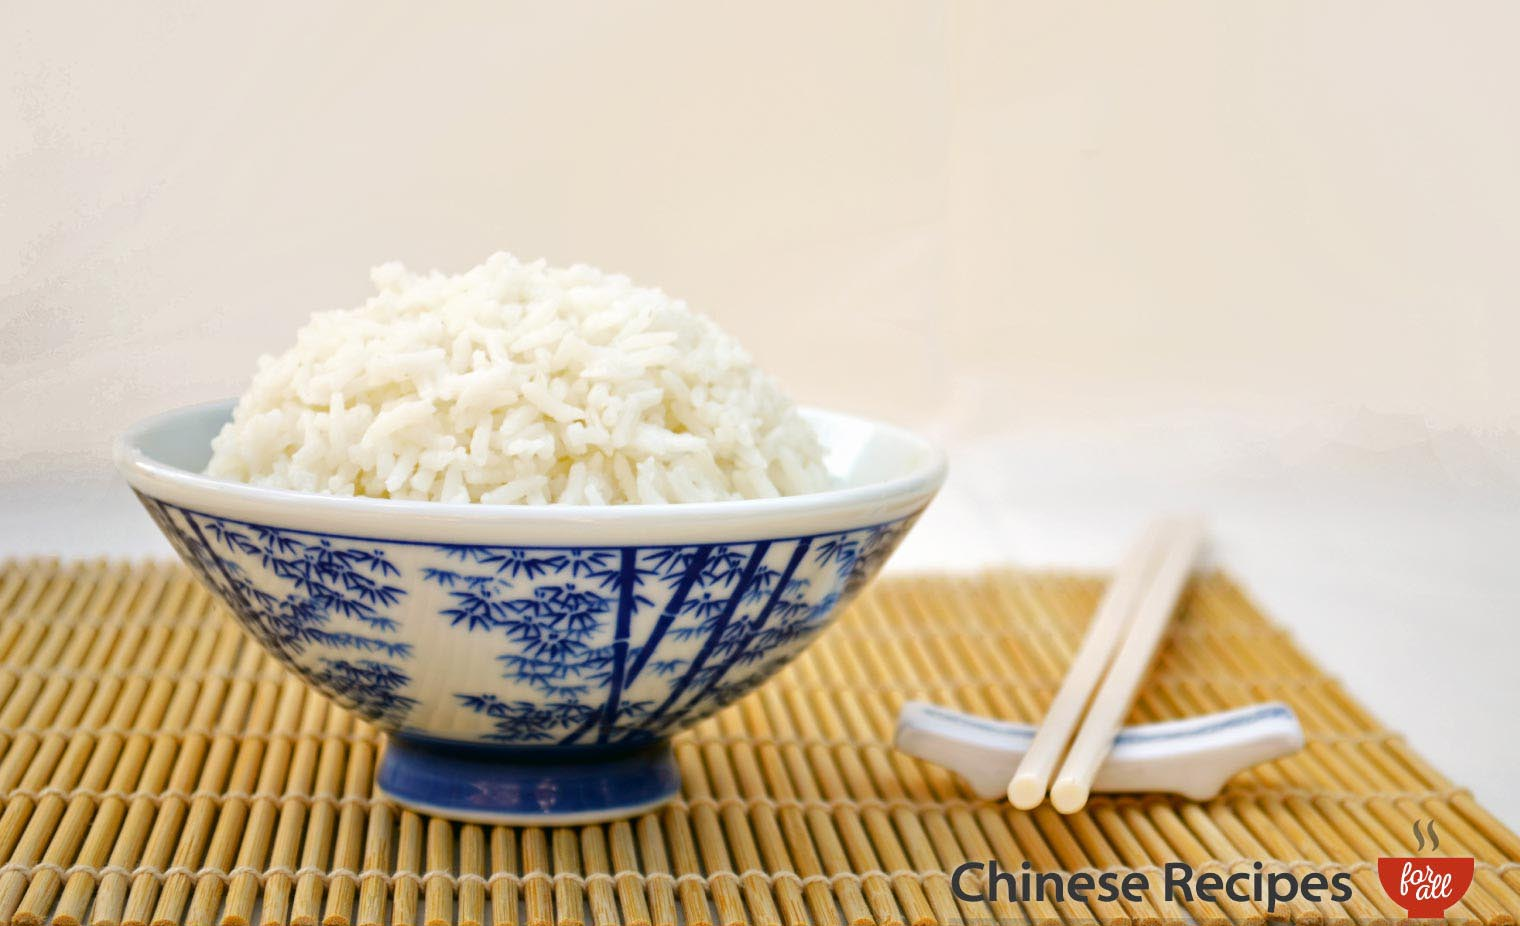 Boiled Rice - Chinese Recipes For All